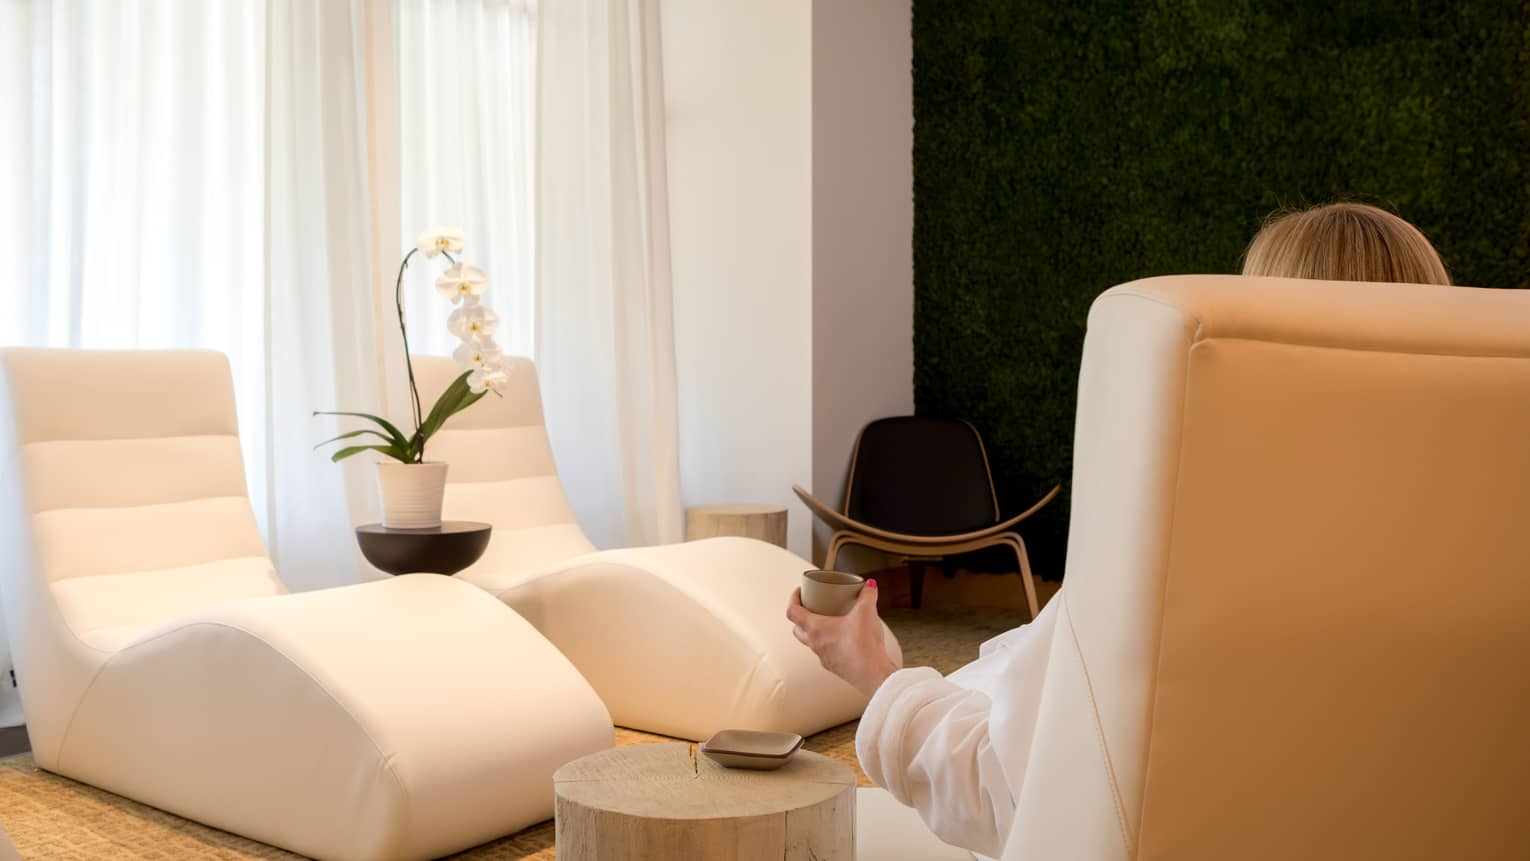 Back of woman in white robe sitting in white spa lounge chair holding small tea cup, two empty chairs across